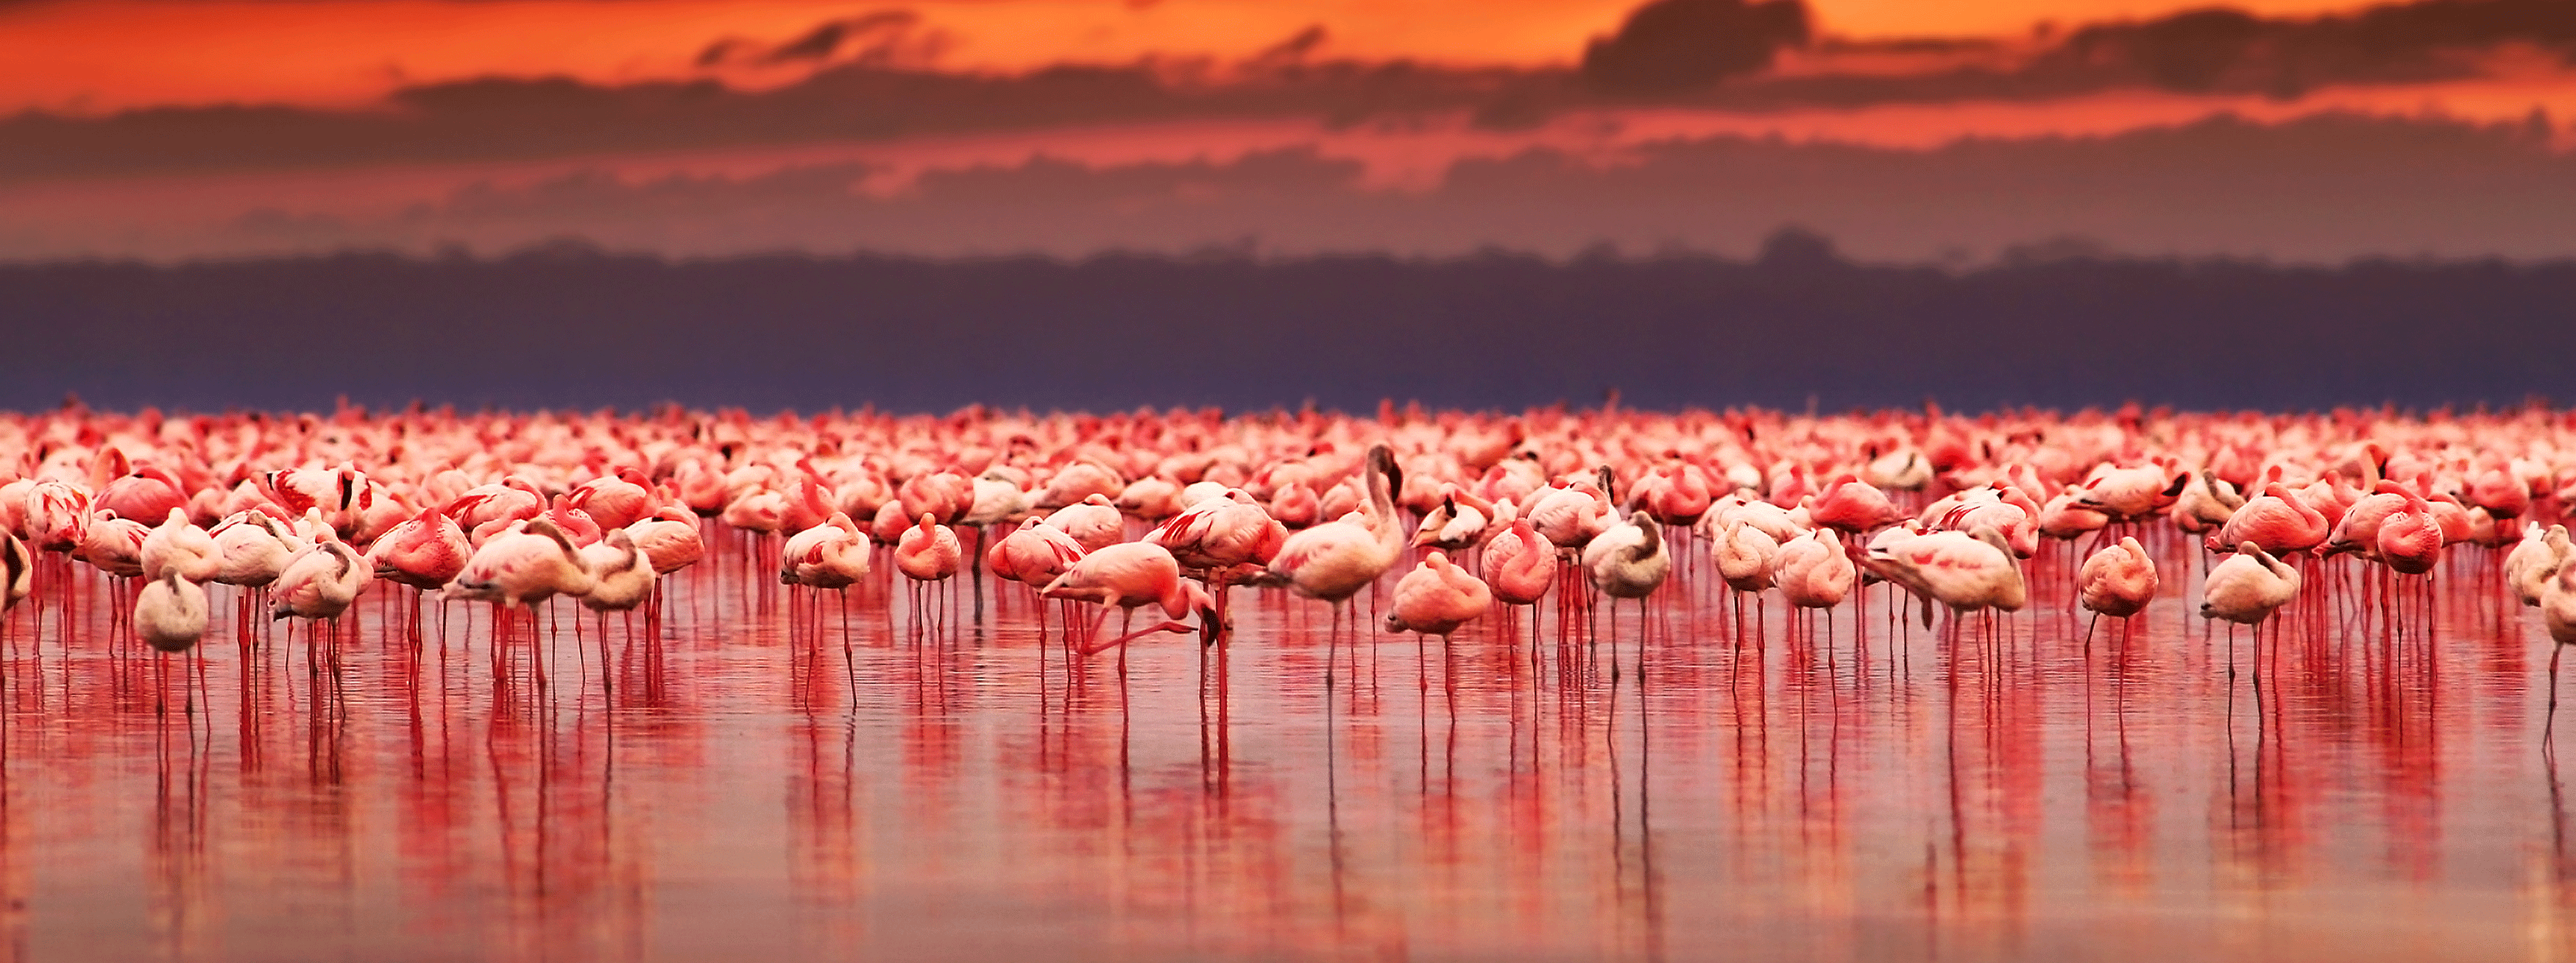 /resource/Images/Tanzania_Kenya/headerimage/African-flamingos-in-the-lake.png